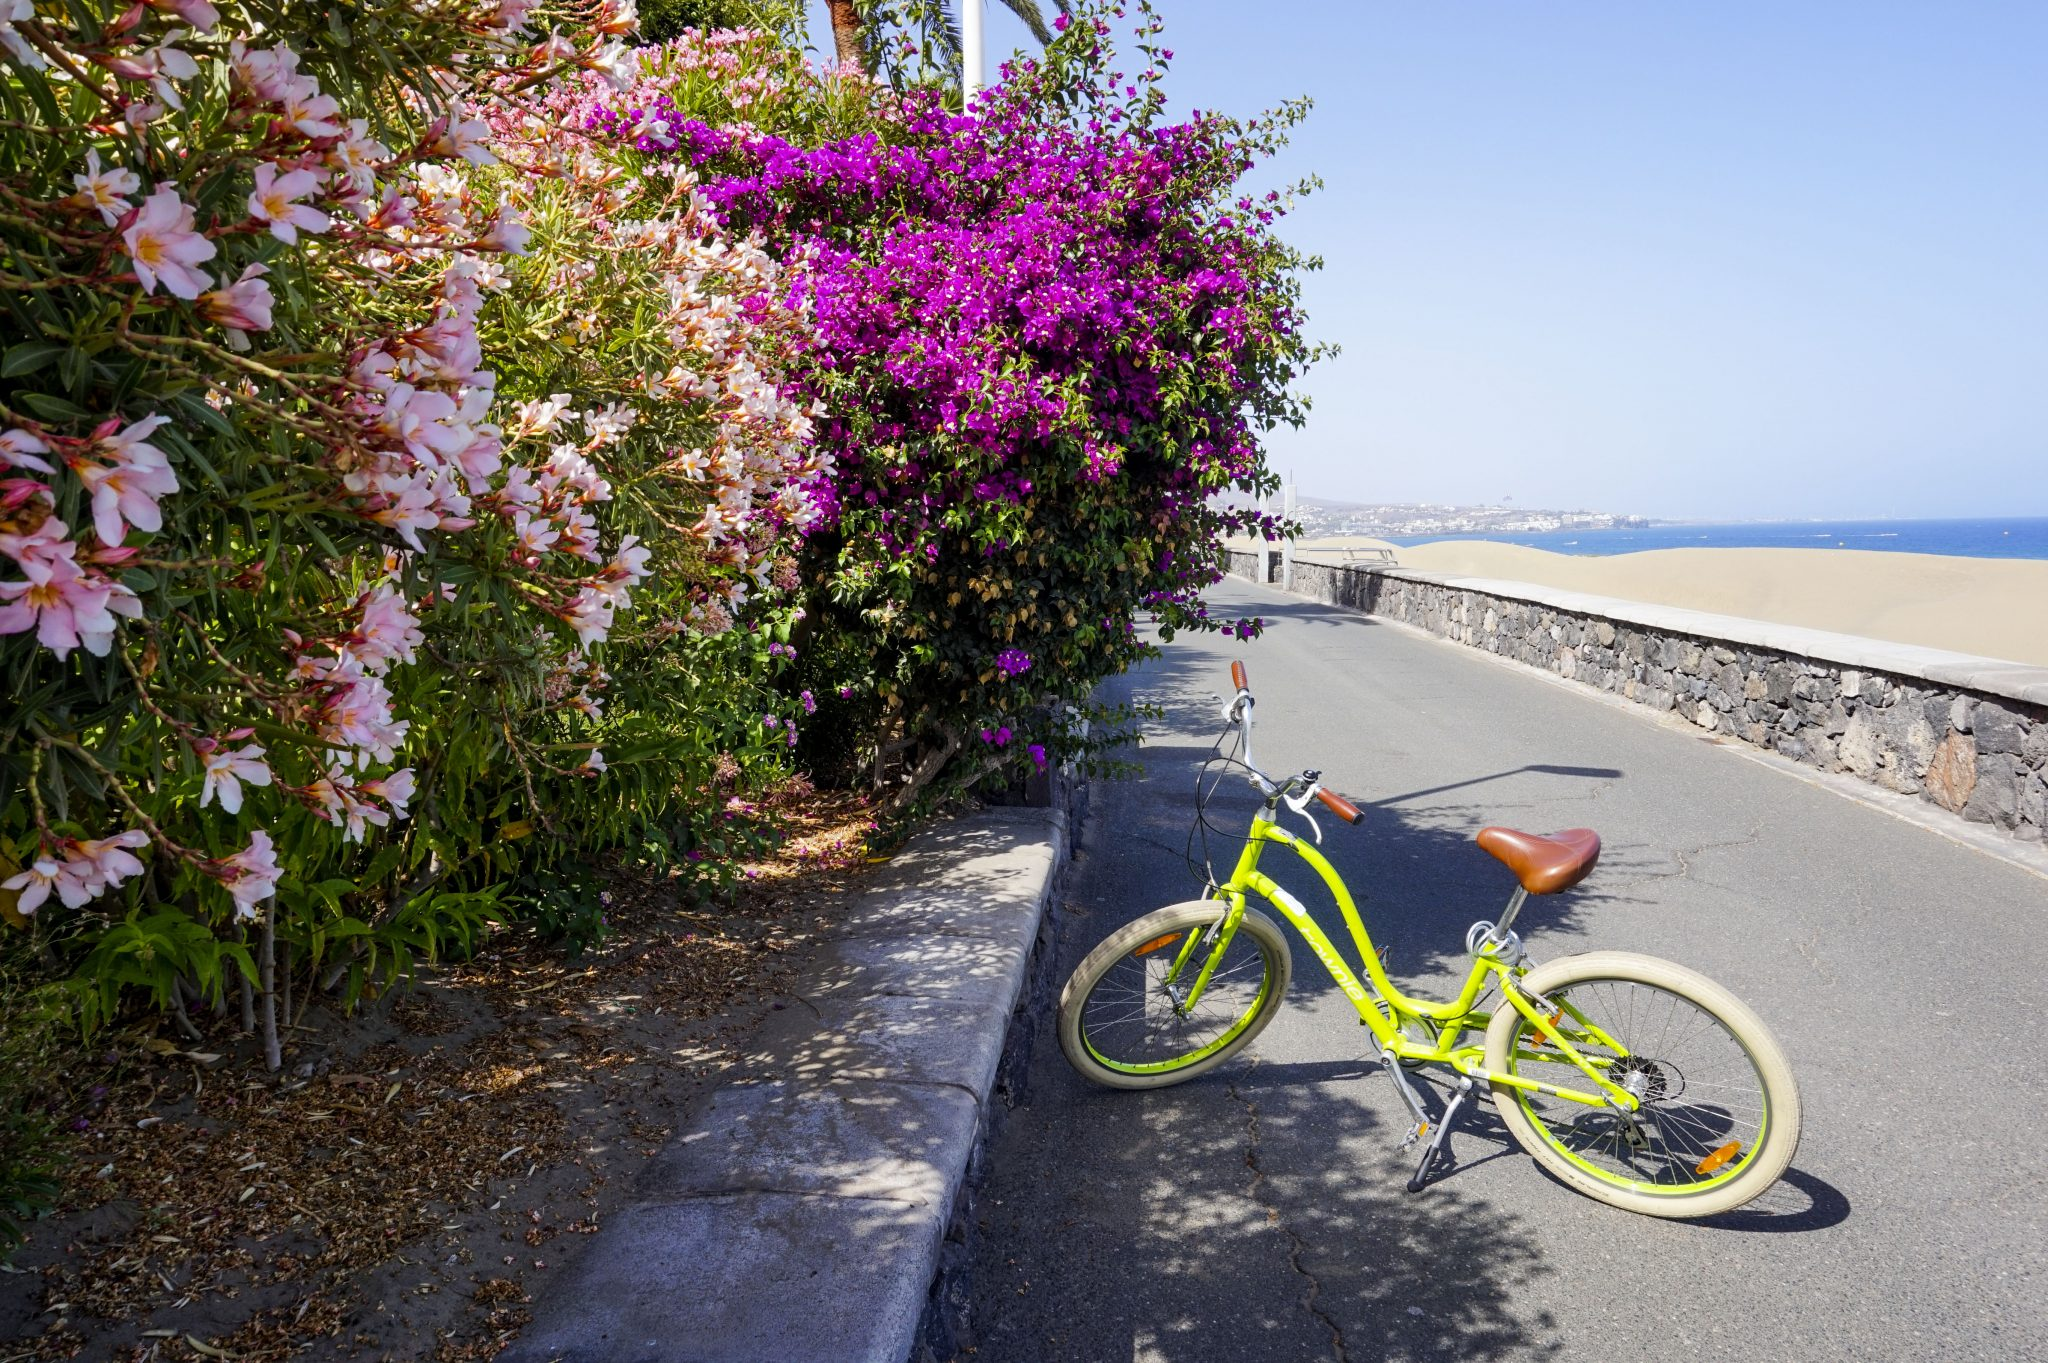 green electra bikes in maspalomas dunes purple flowers